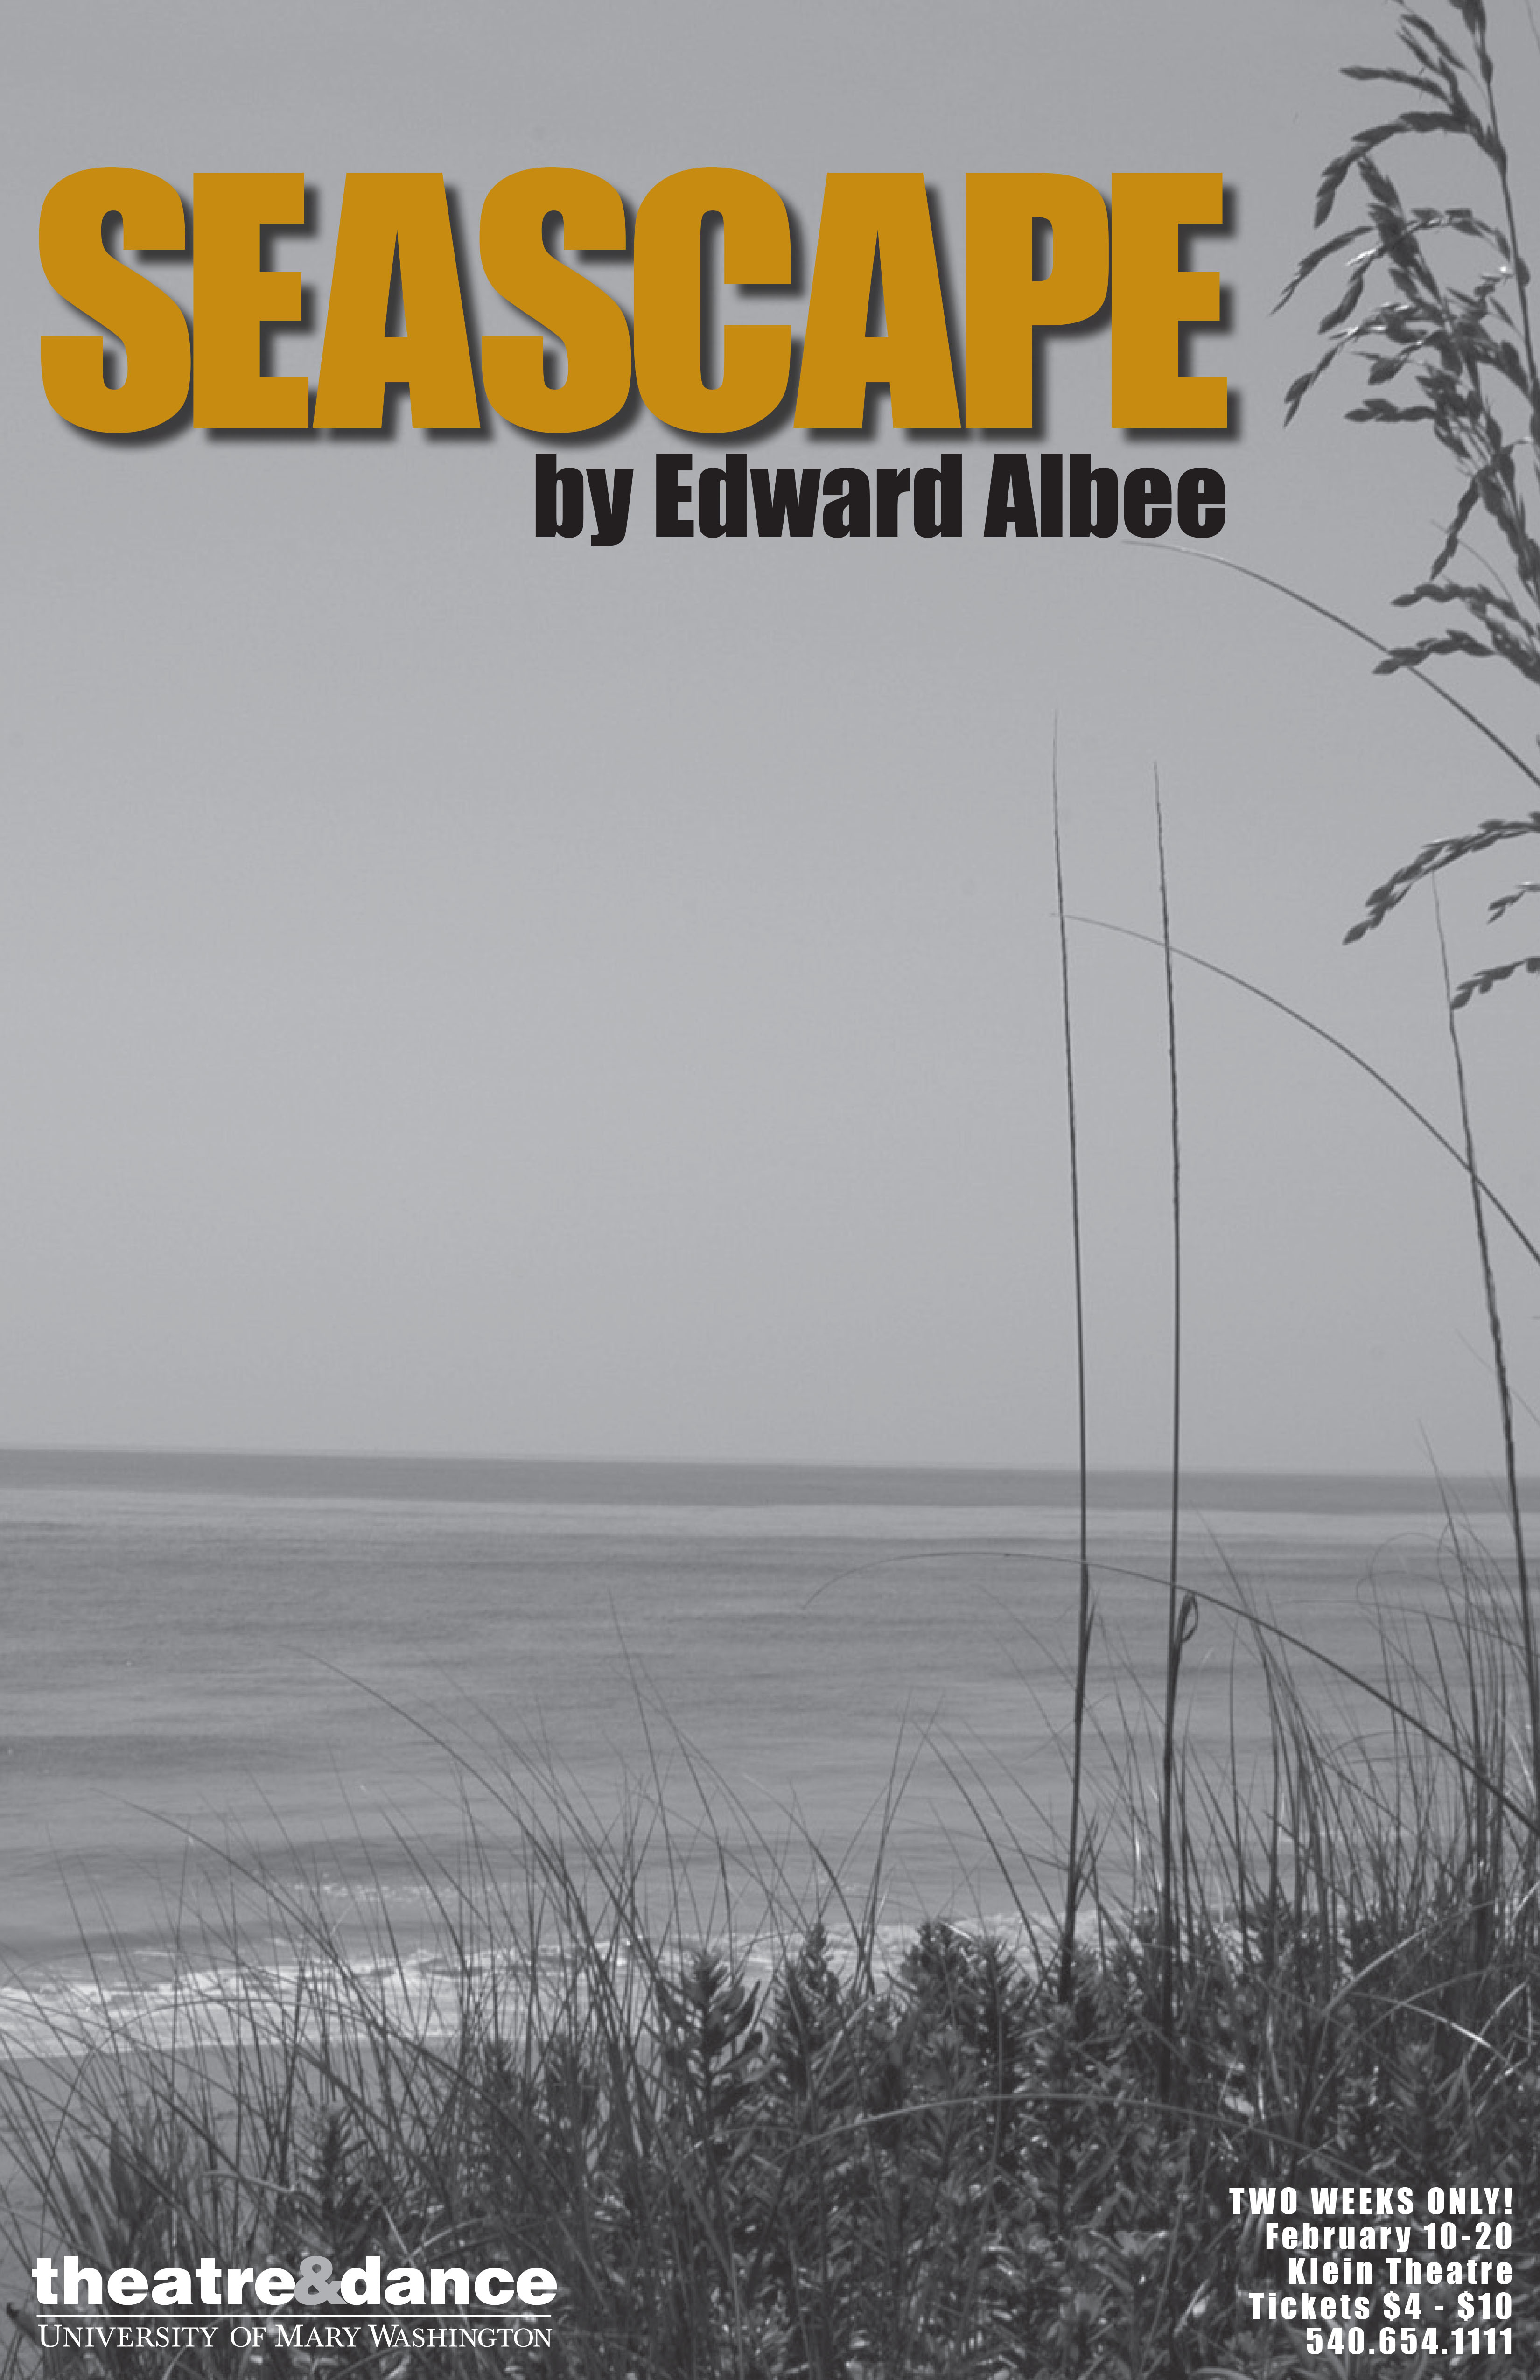 edward albee me myself and i pdf